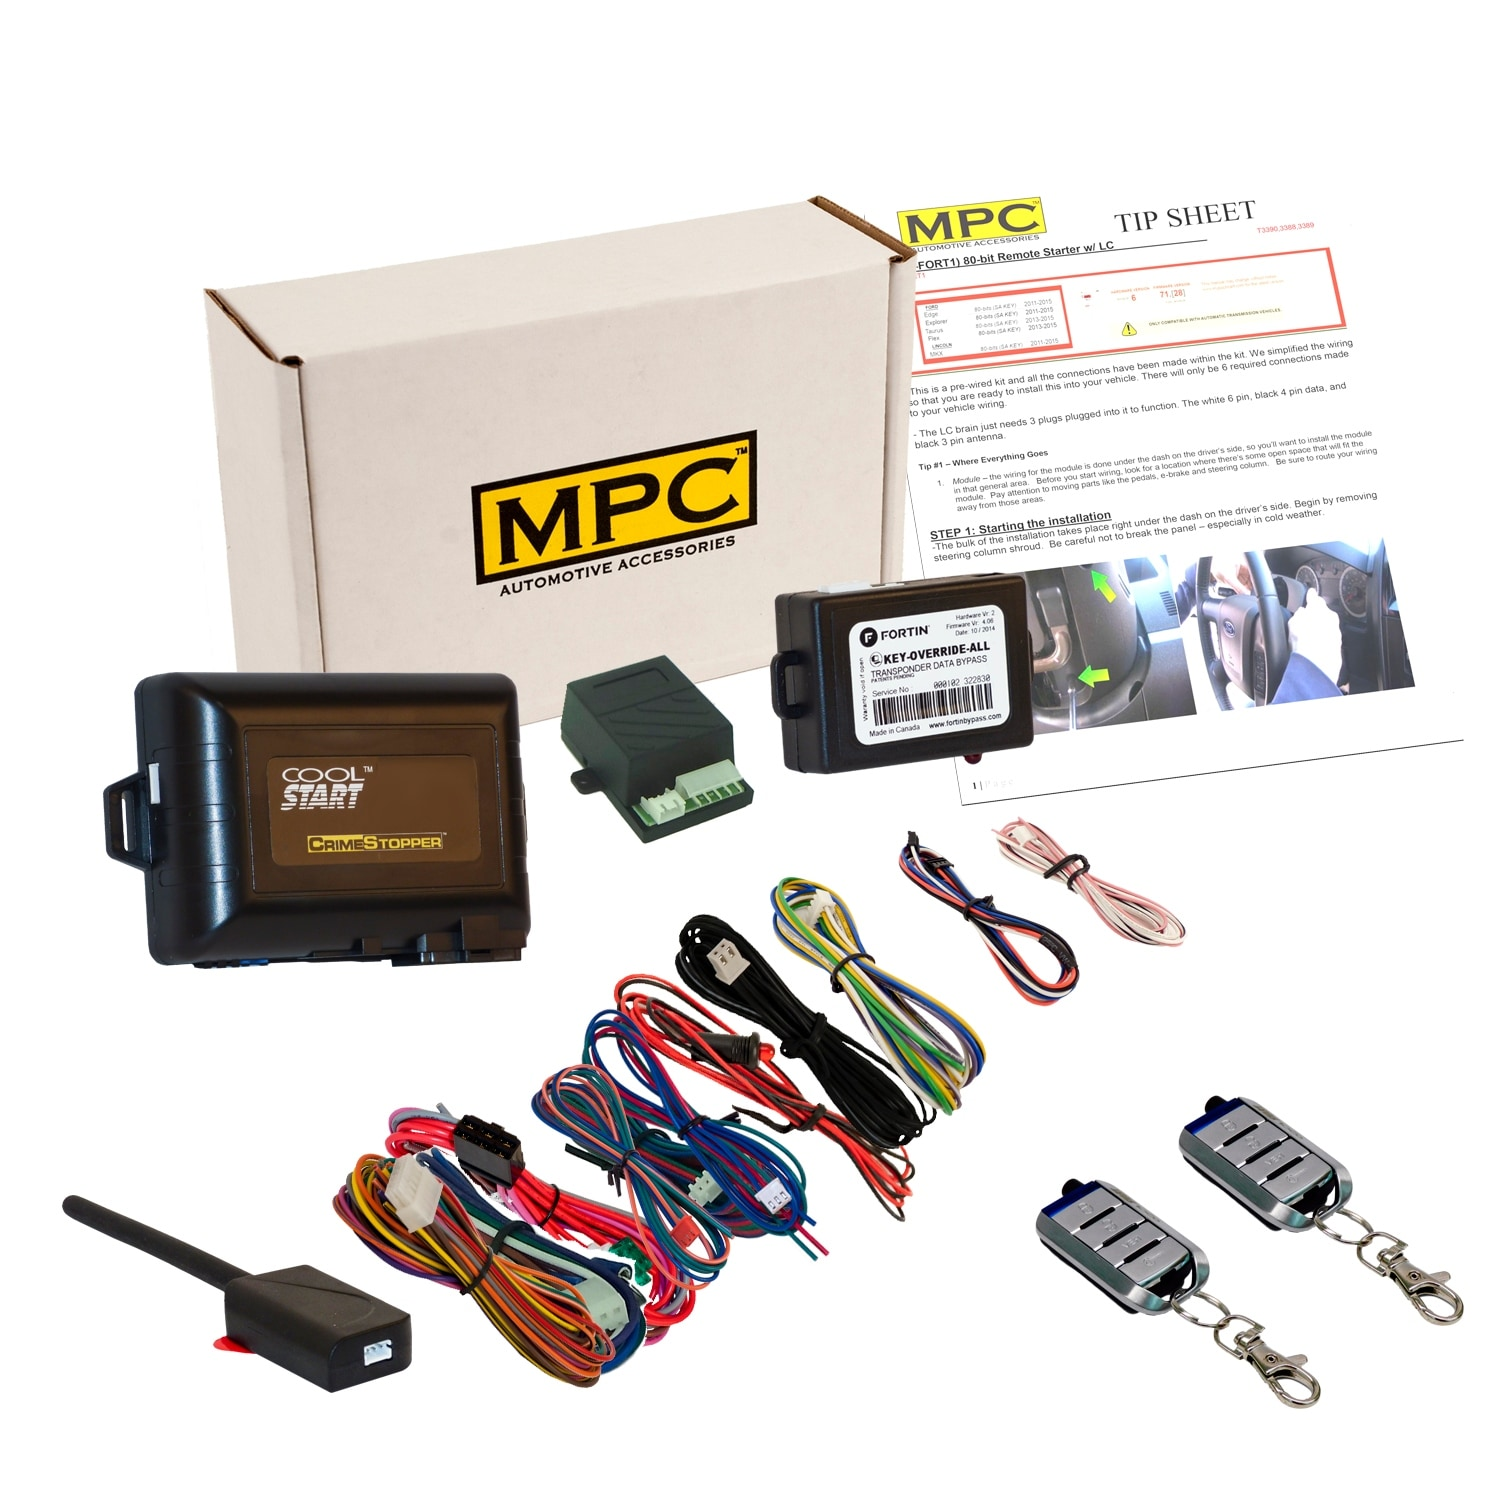 shop complete remote start kit with keyless entry for 2000-2001 ford  excursion - includes bypass and (2) 4 button remotes - free shipping today  - overstock